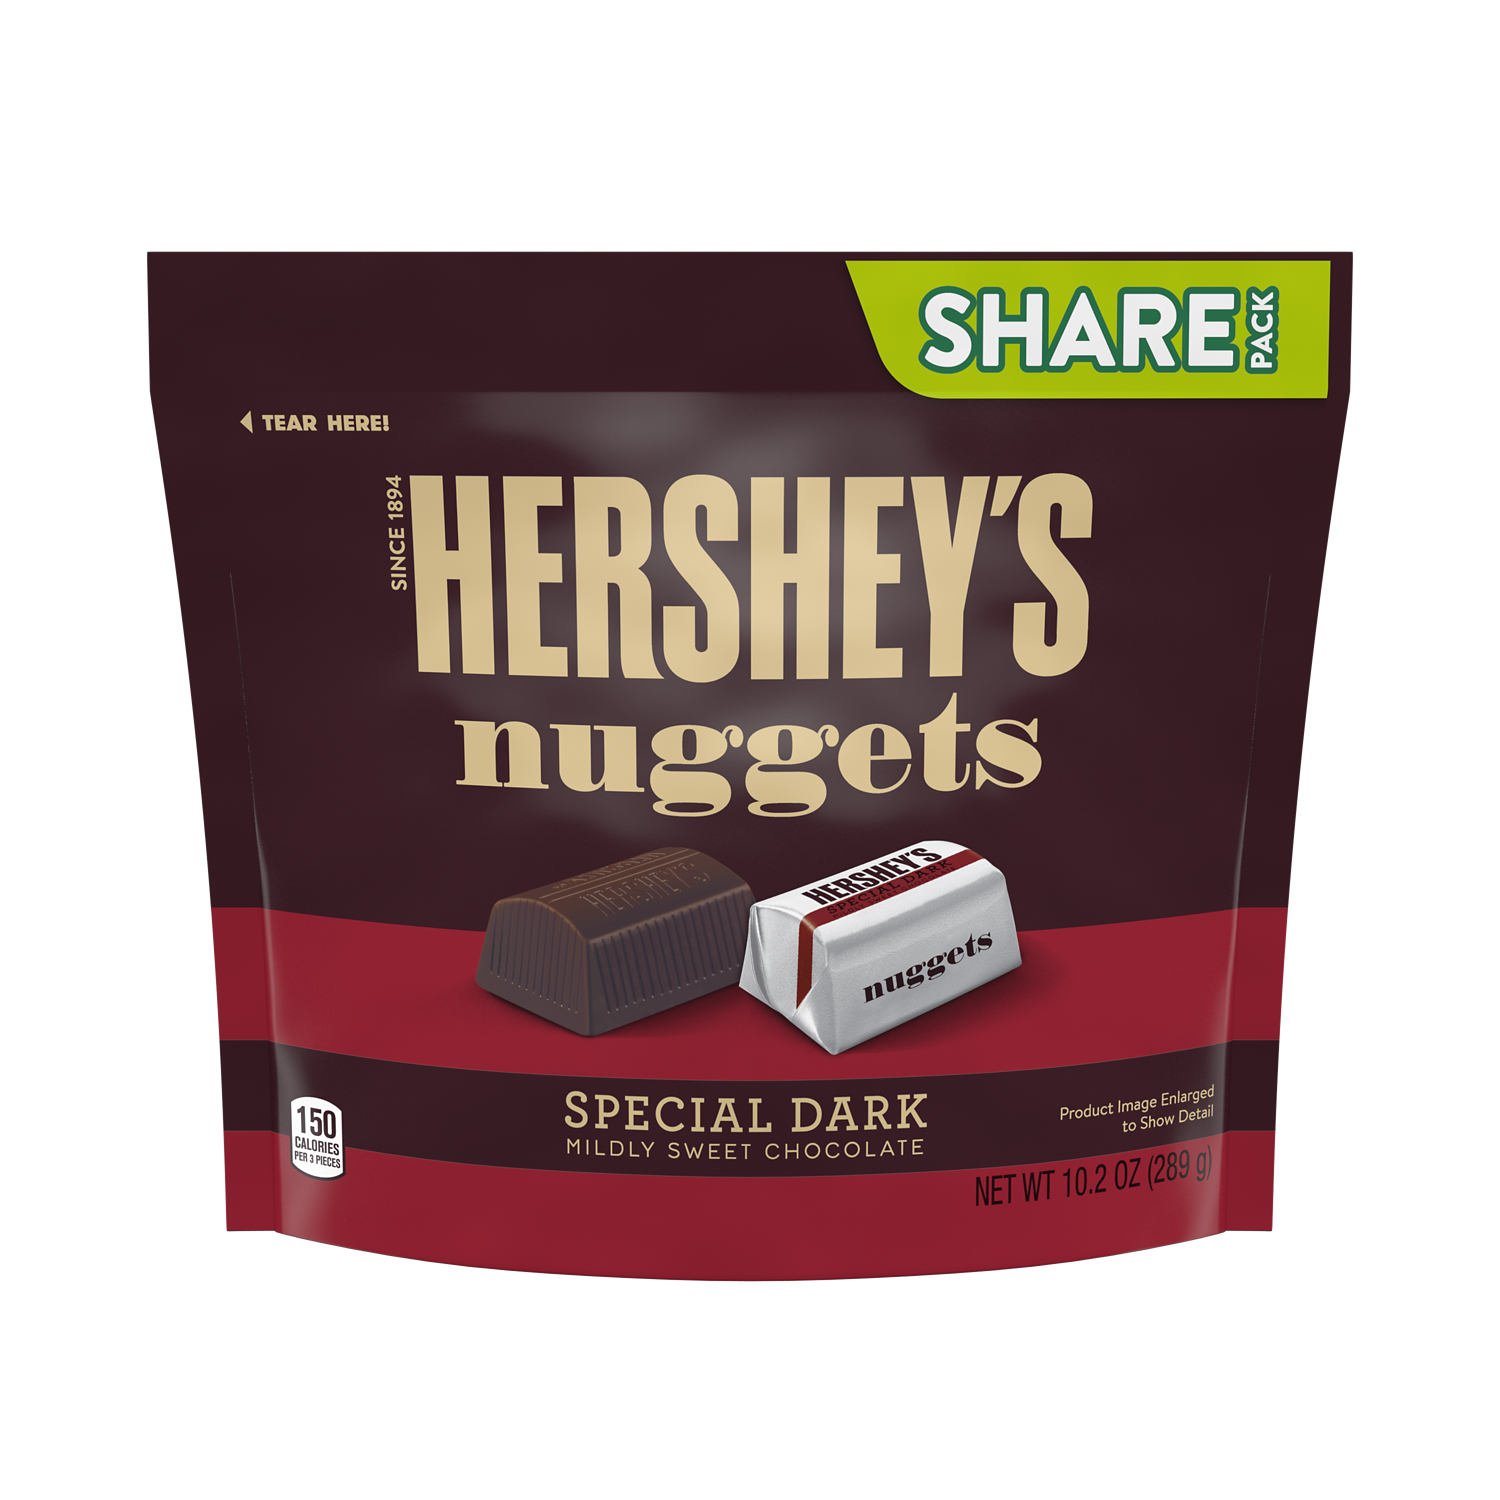 HERSHEY'S NUGGETS SPECIAL DARK Mildly Sweet Chocolate Candy, 10.2 oz pack - Front of Package